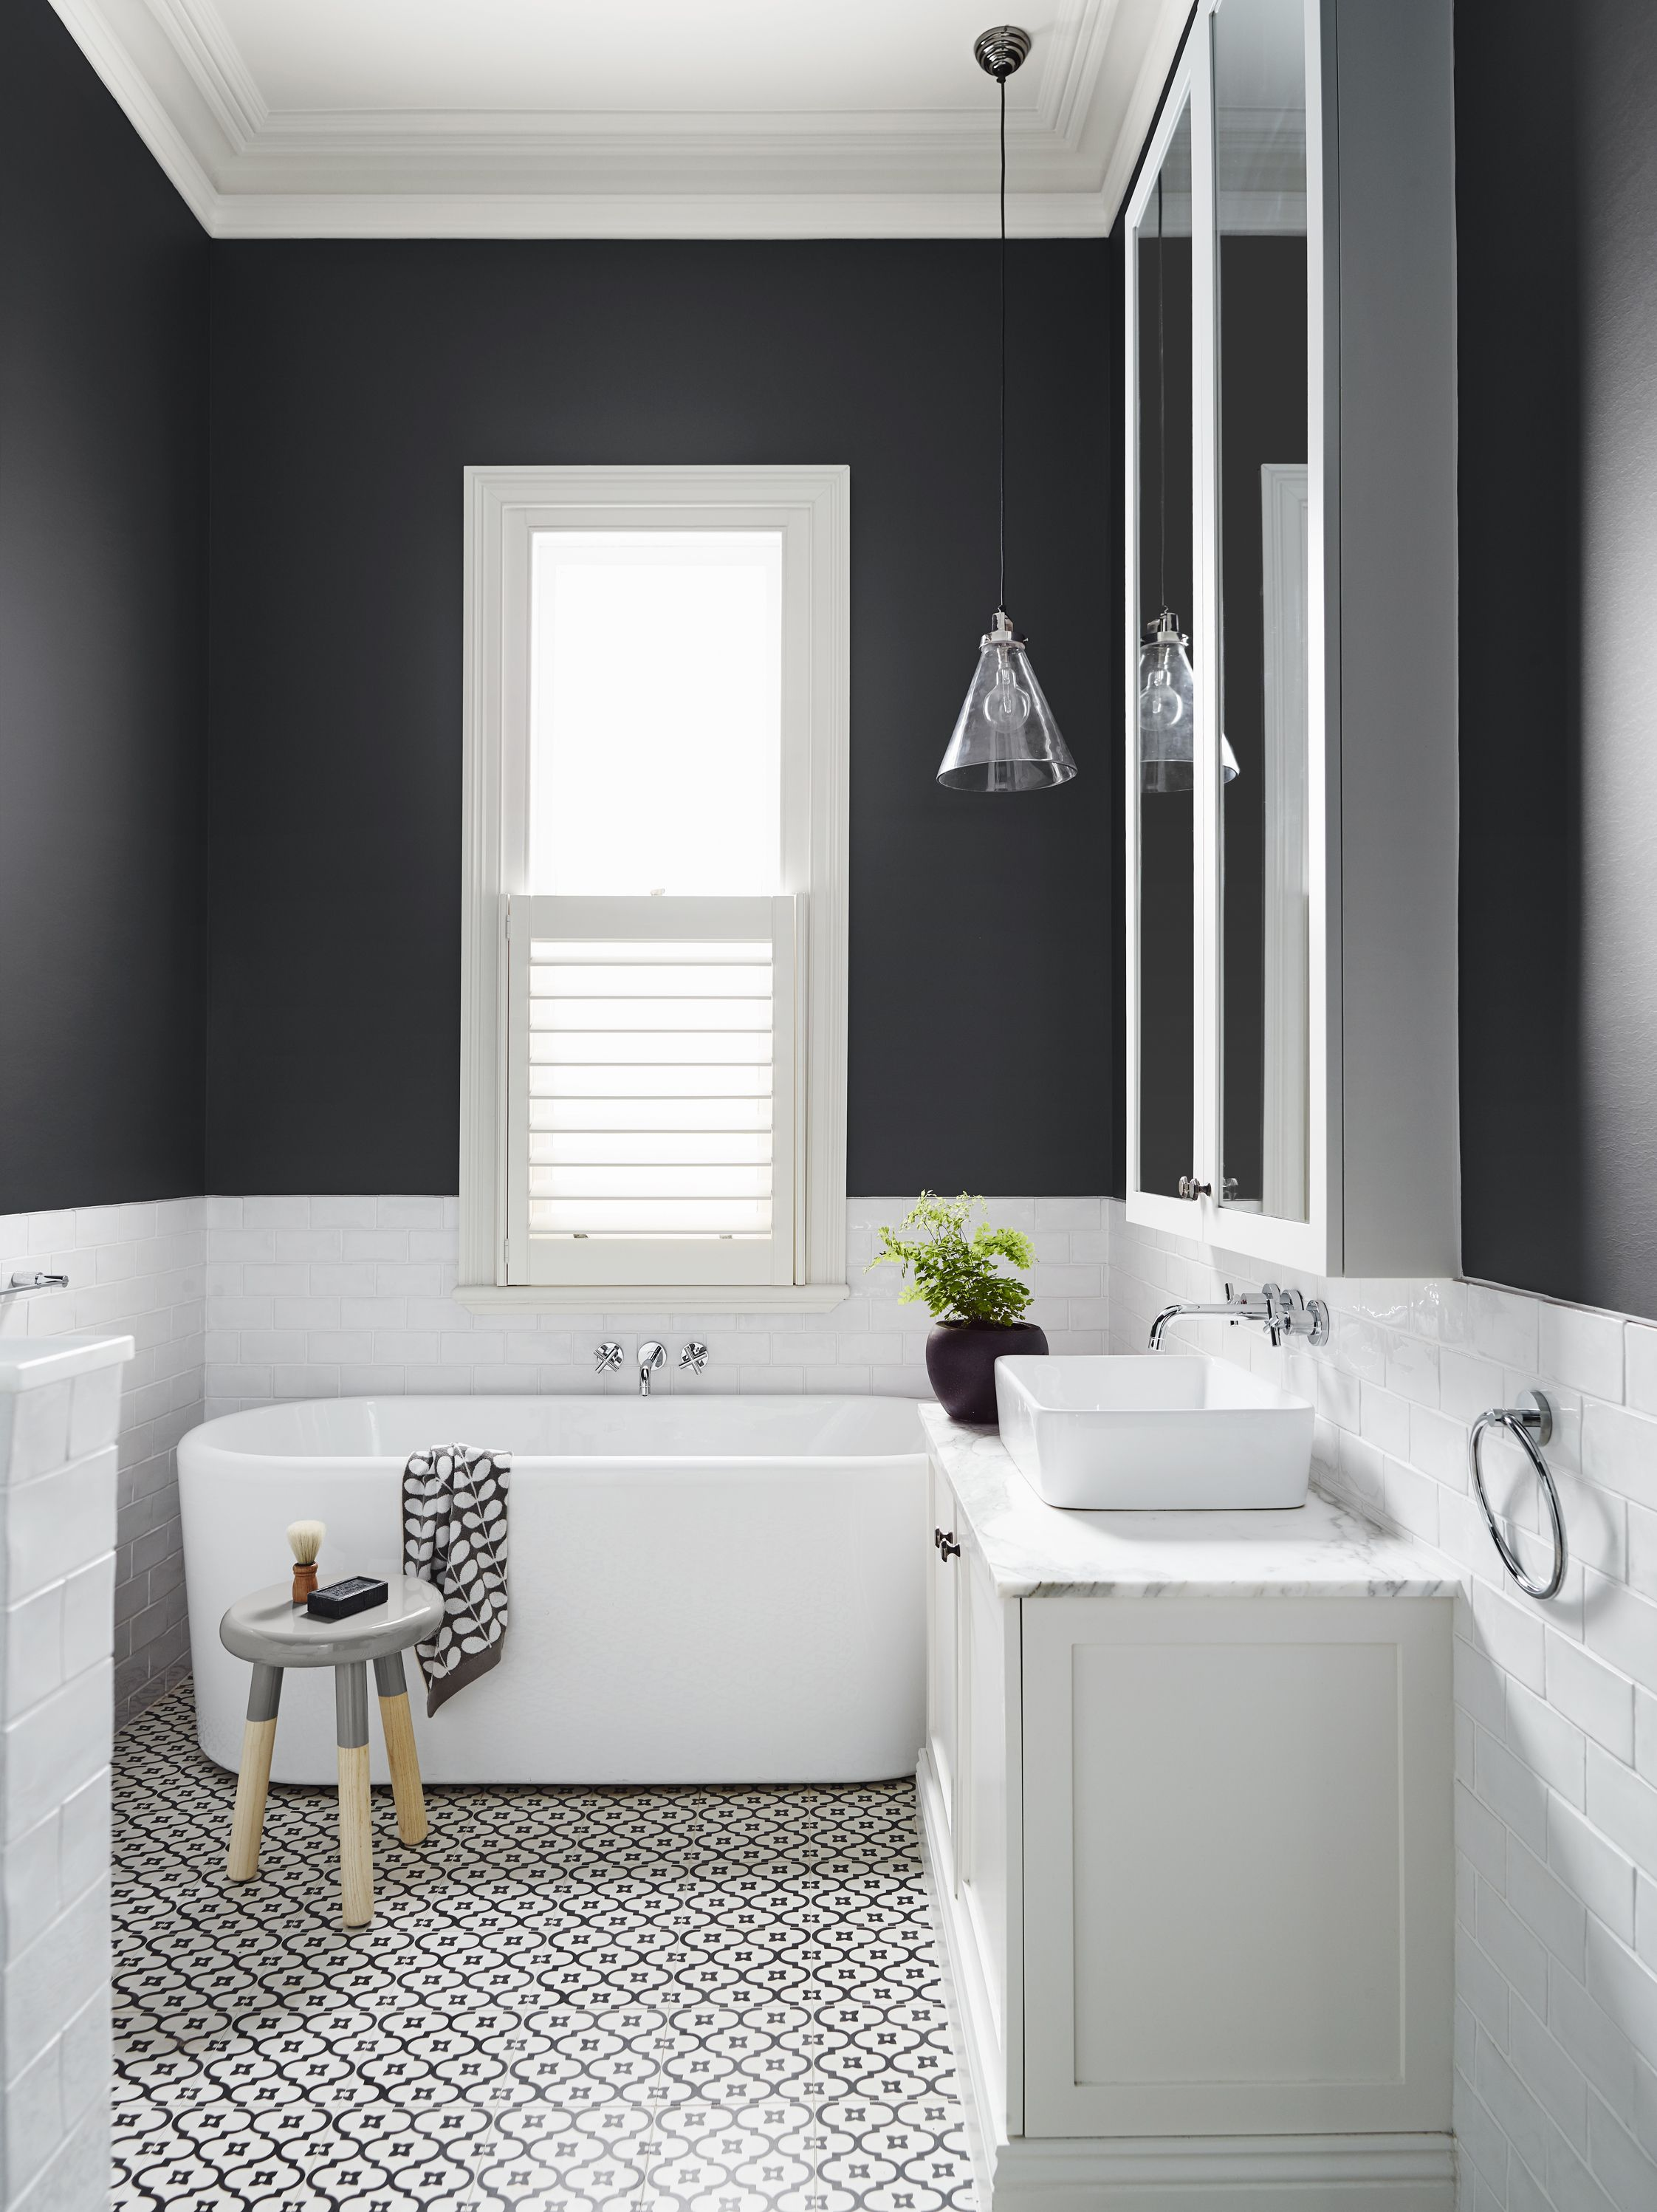 Classic black and white bathroom | Bathroom Ideas | Pinterest | Wall ...